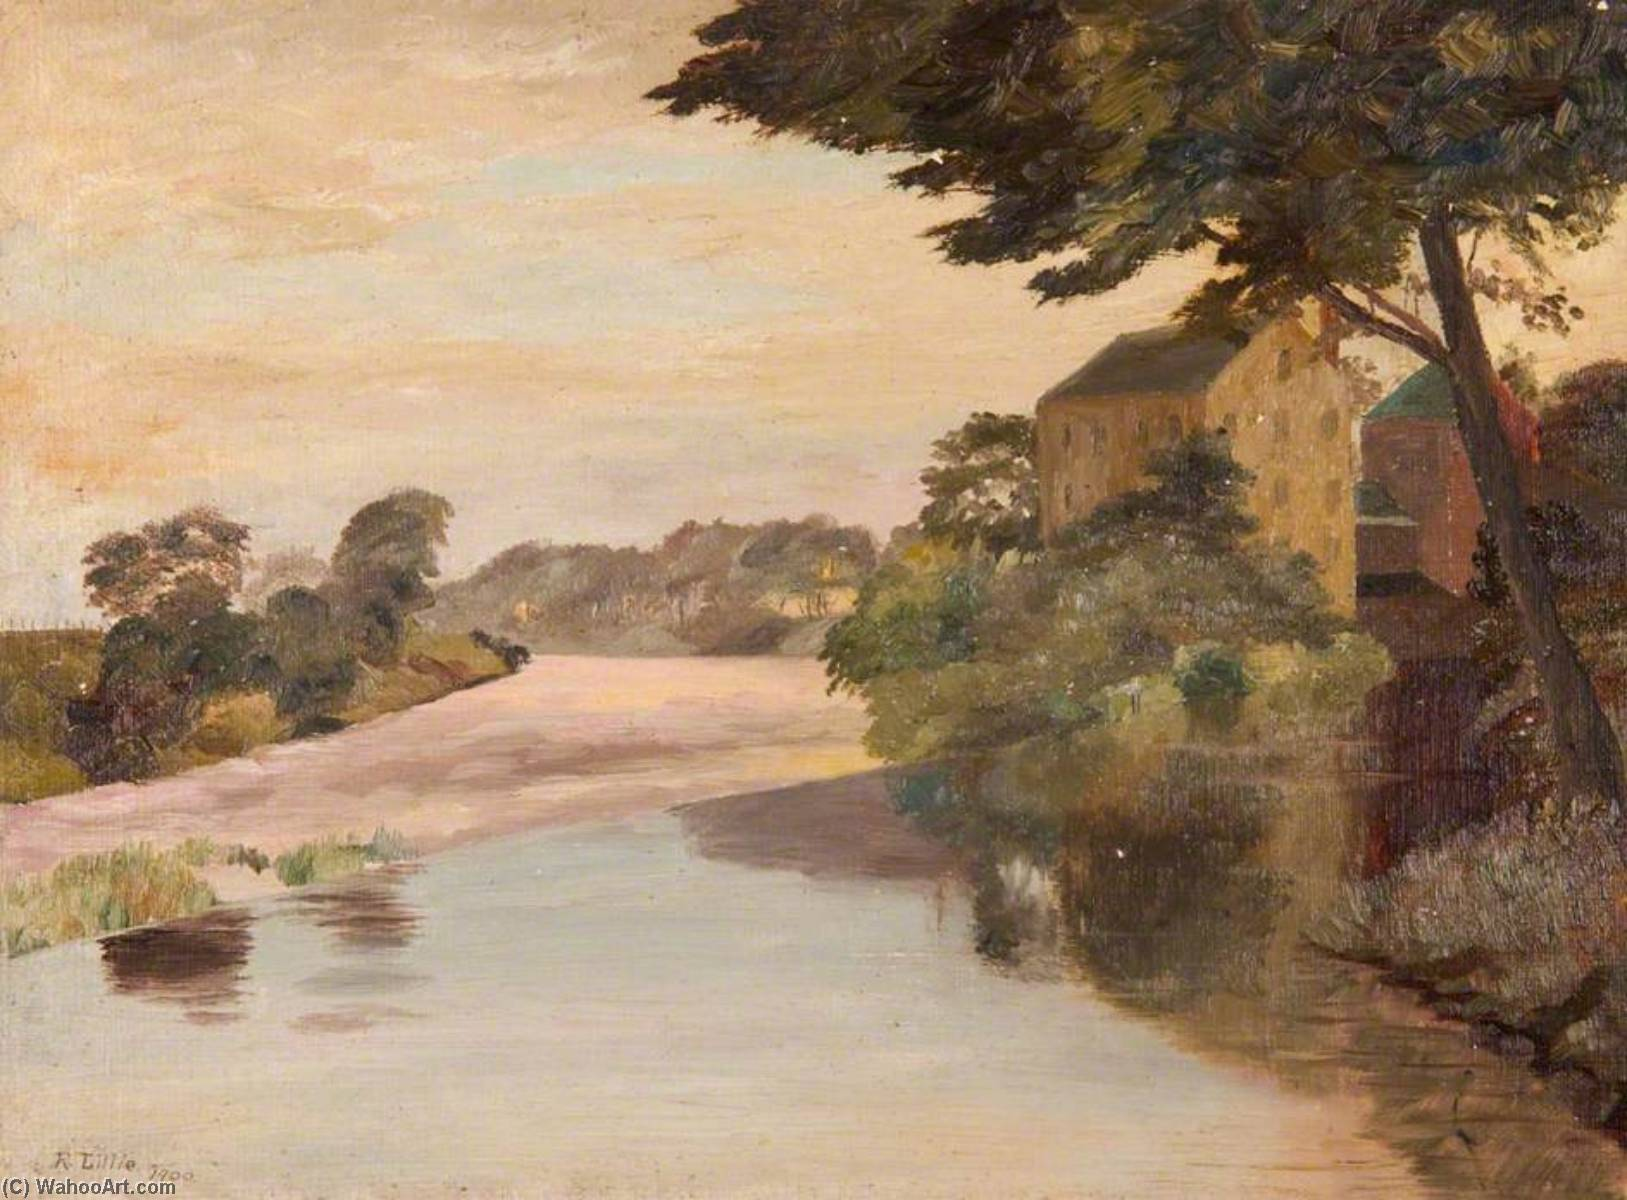 ancien moulin , Carmyle, 1900 de Robert Lillie | Reproduction Peinture | WahooArt.com